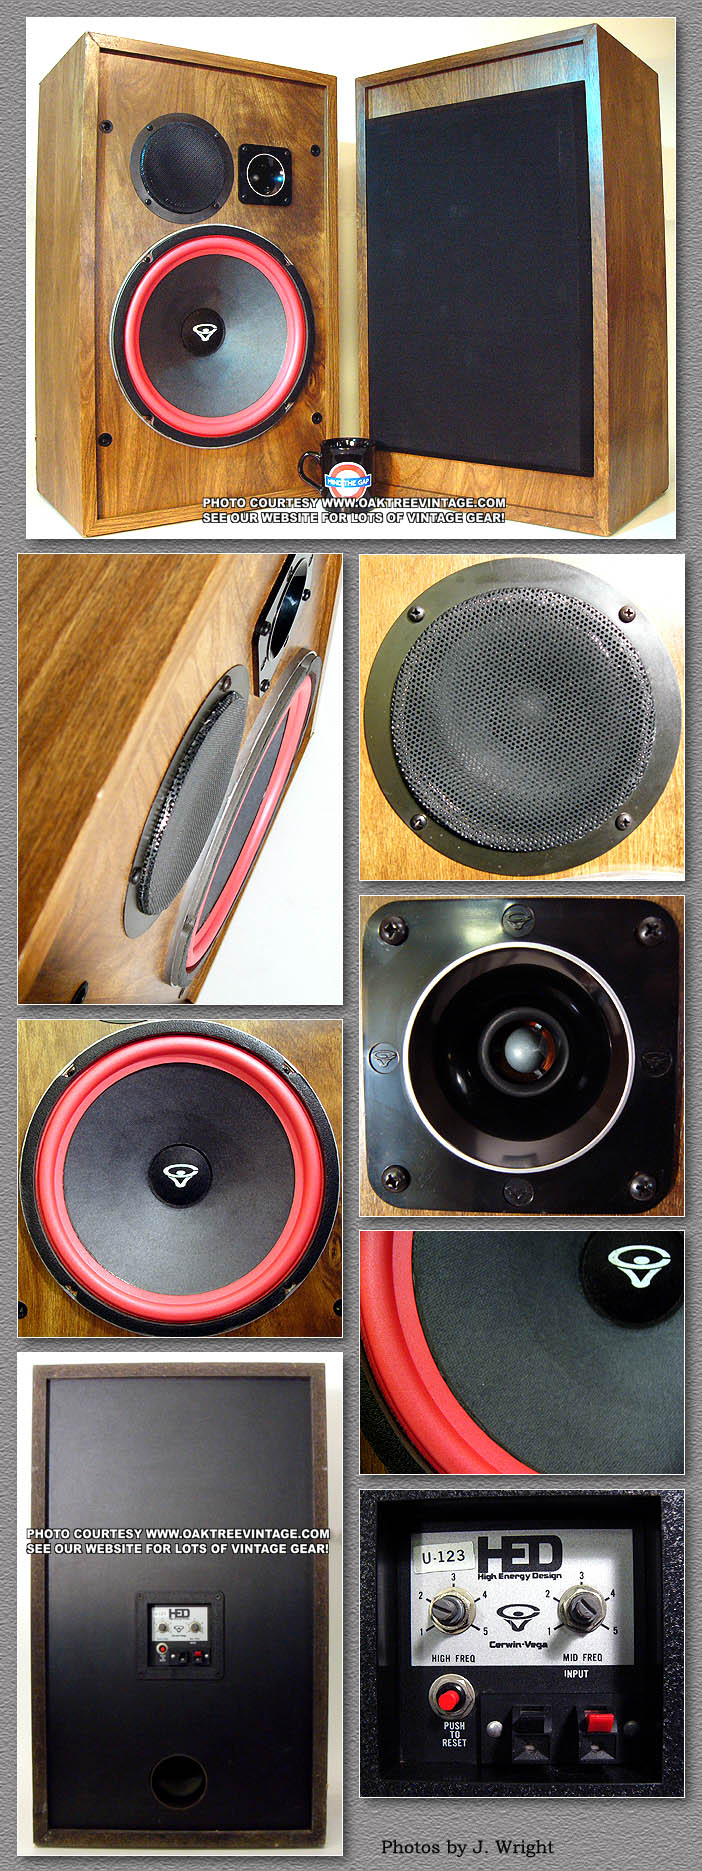 Cerwin Vega / HED Replacement parts for Vintage Cerwin speakers